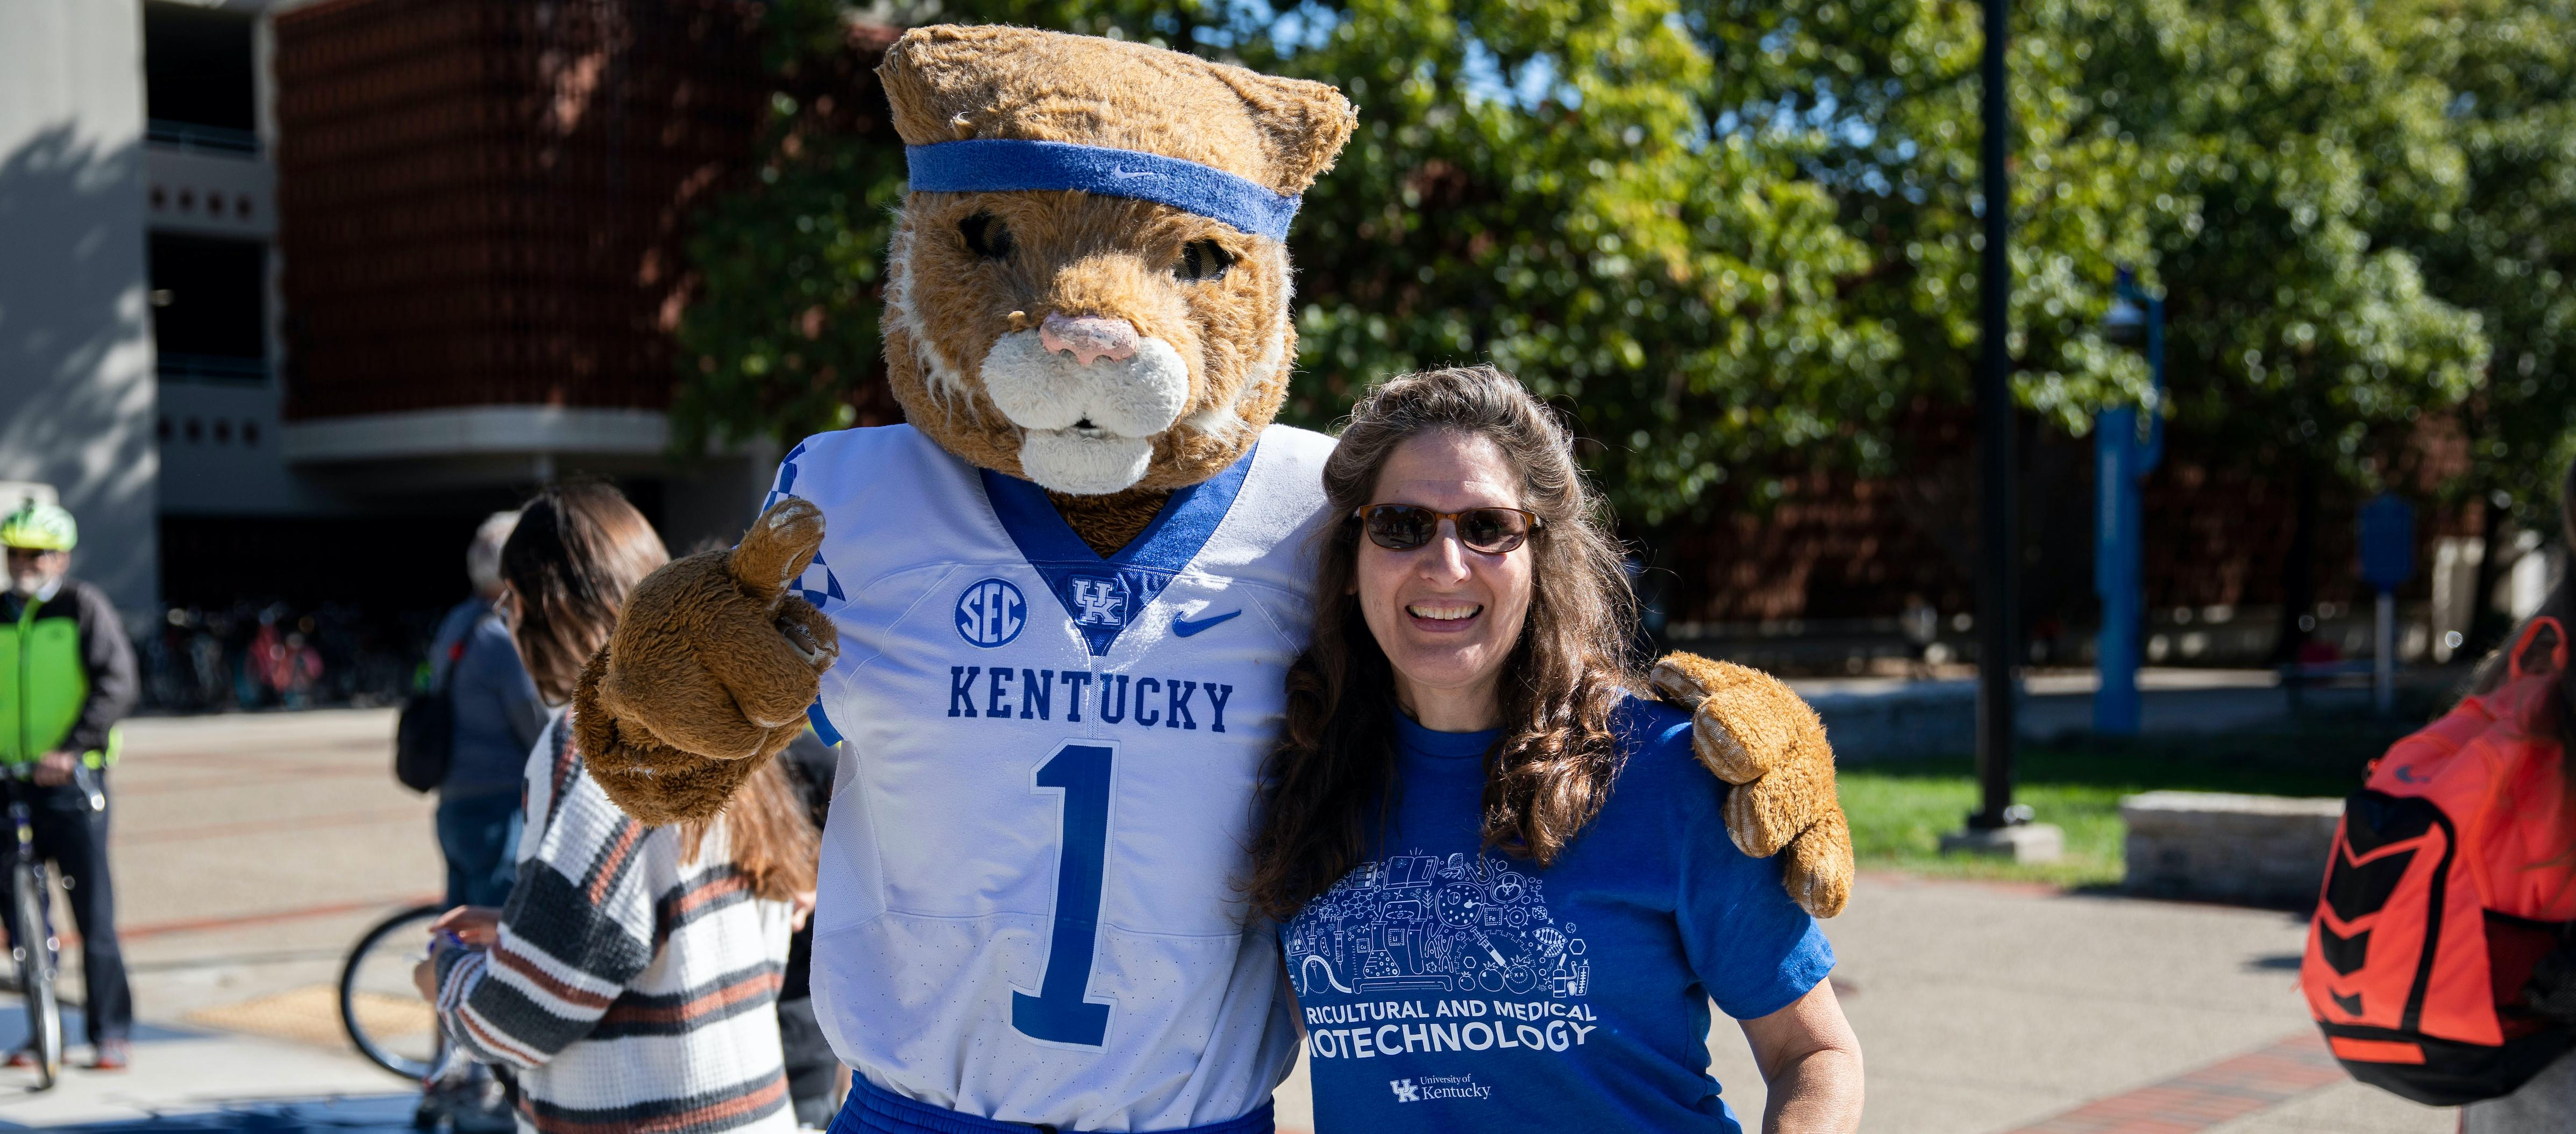 University of Kentucky Resources Campus Advising